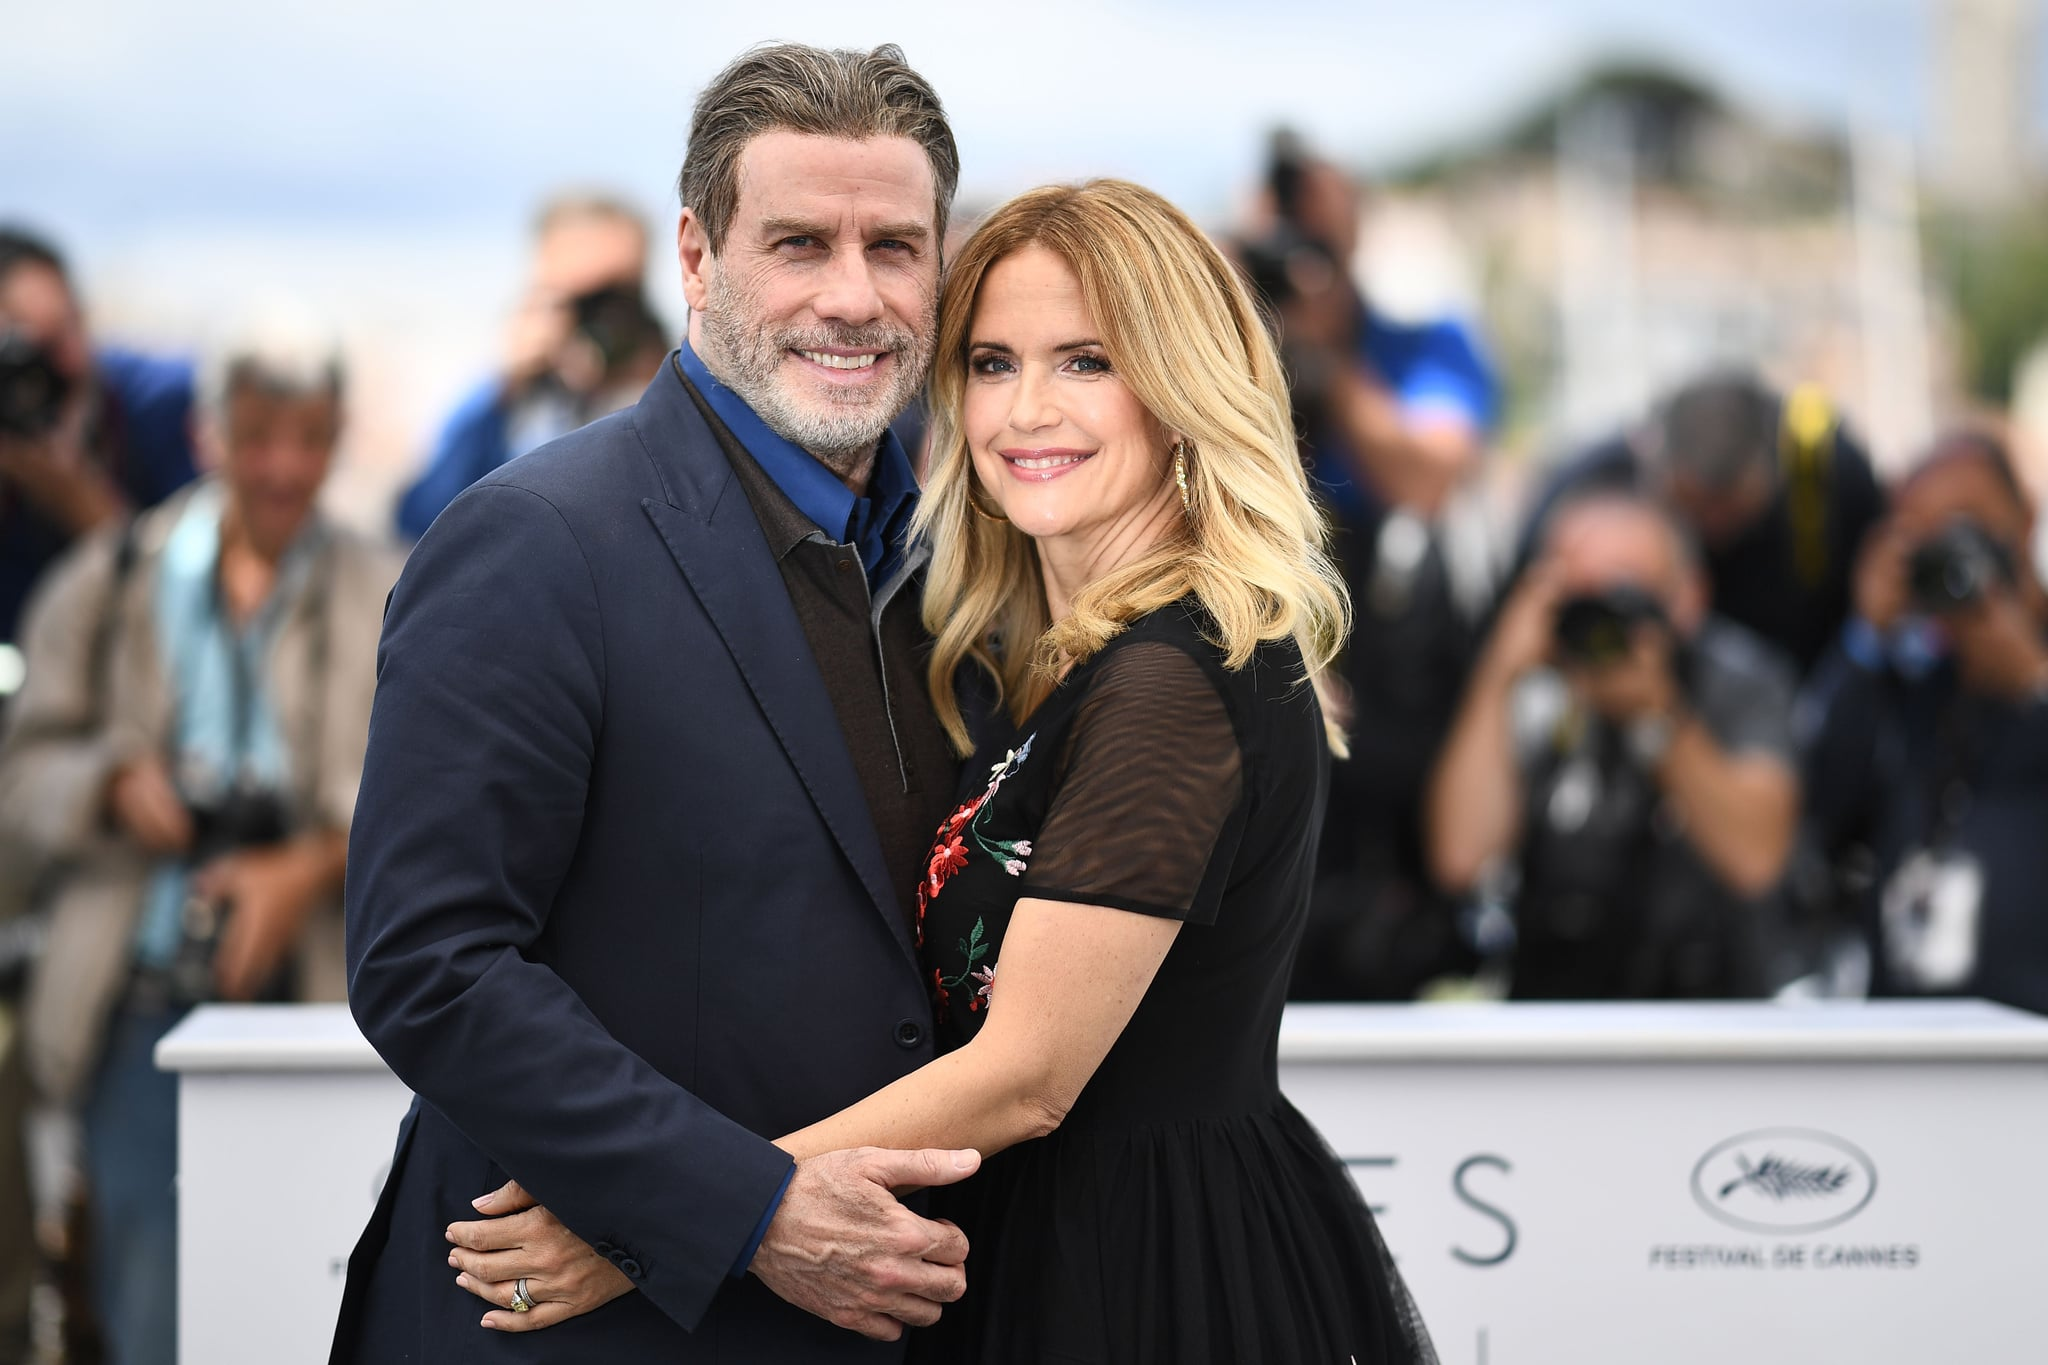 TOPSHOT - US actor John Travolta (L) and his wife US actress Kelly Preston pose on May 15, 2018 during a photocall for the film